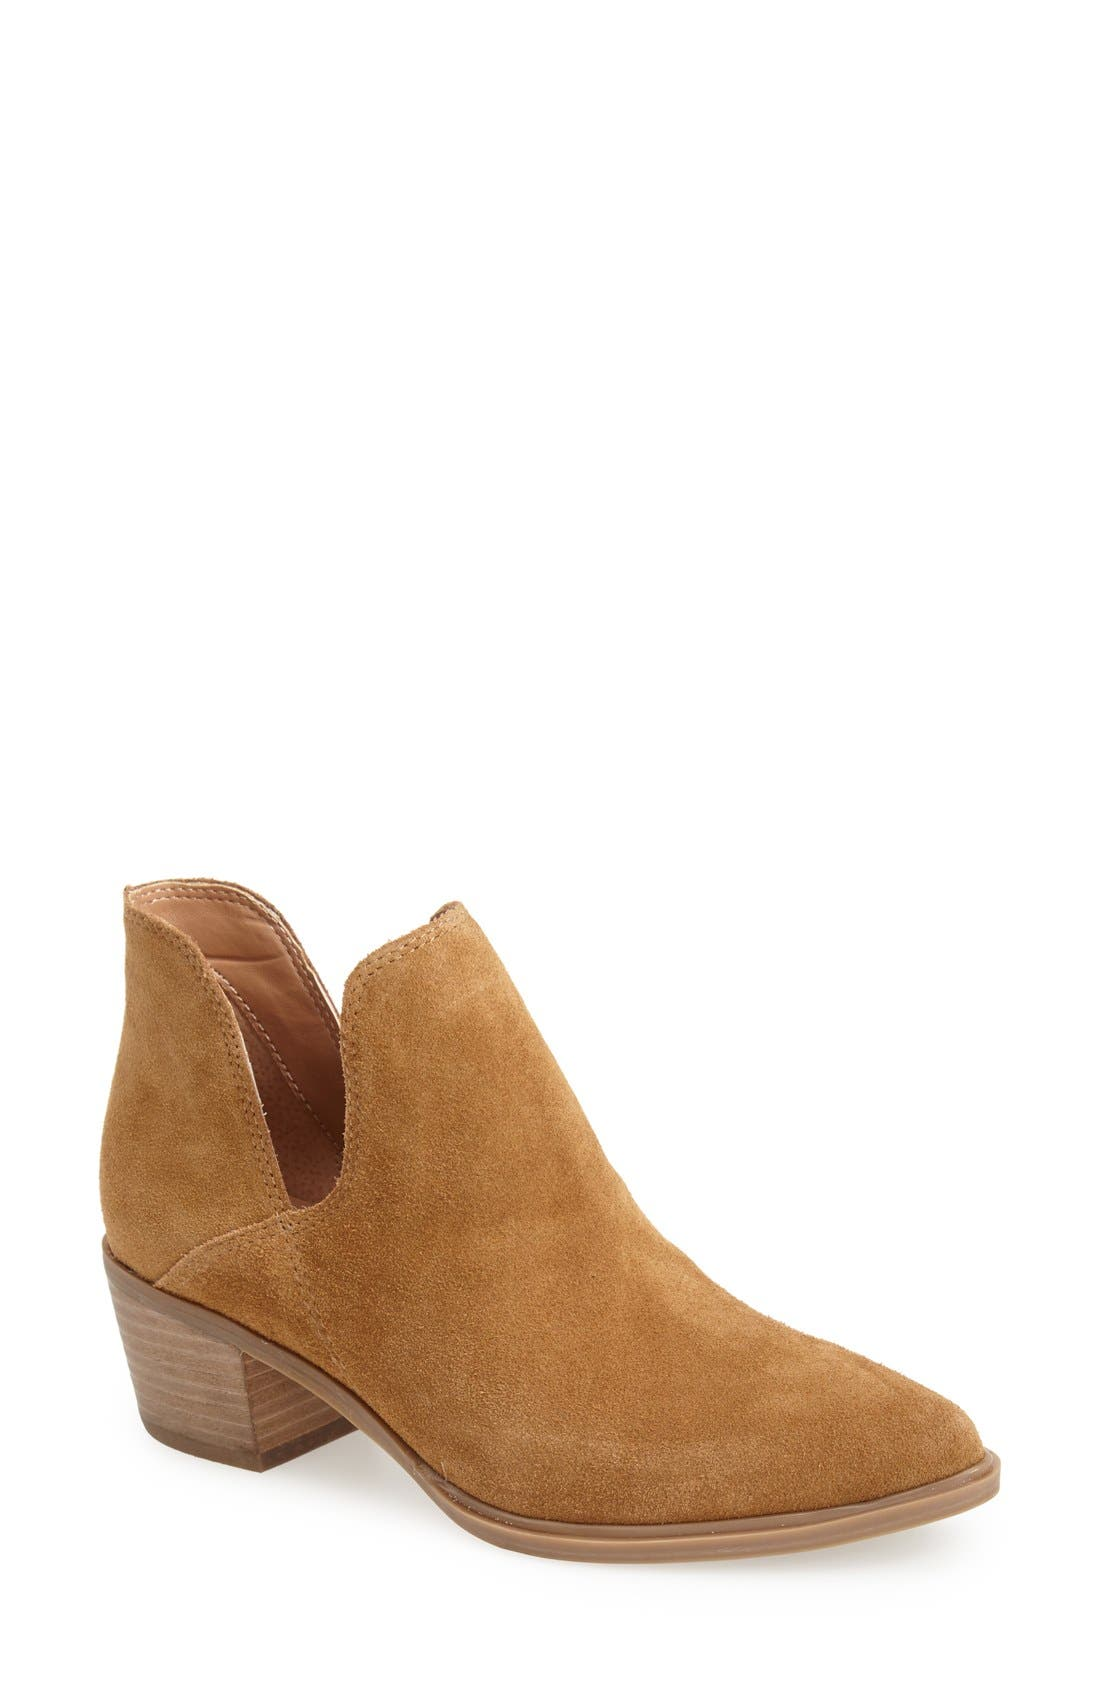 'Dextir' Pointy Toe Ankle Bootie,                         Main,                         color, Camel Suede